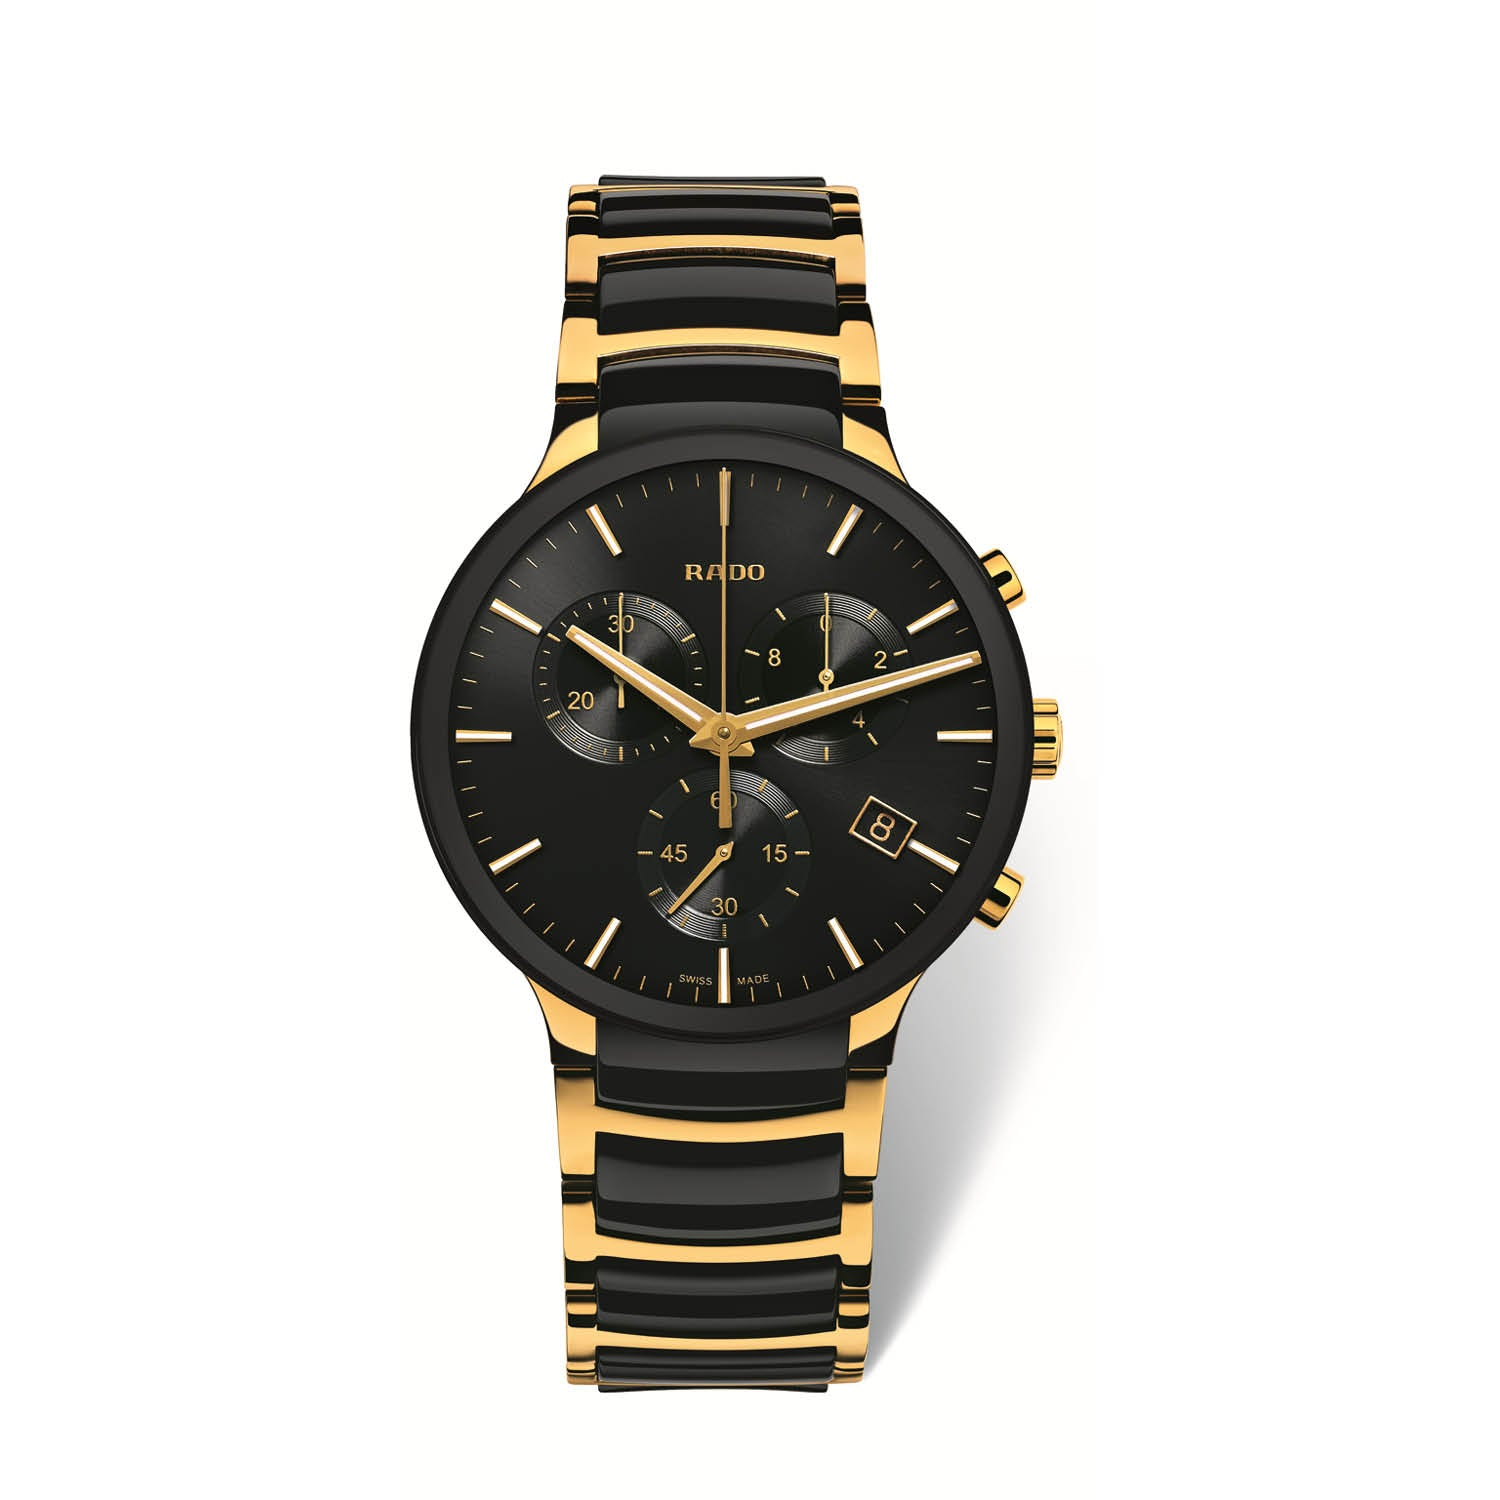 RADO Centrix Xlarge watch, yellow gold PVD bracelet with black high tech ceramic middle links, Chronograph R30134162